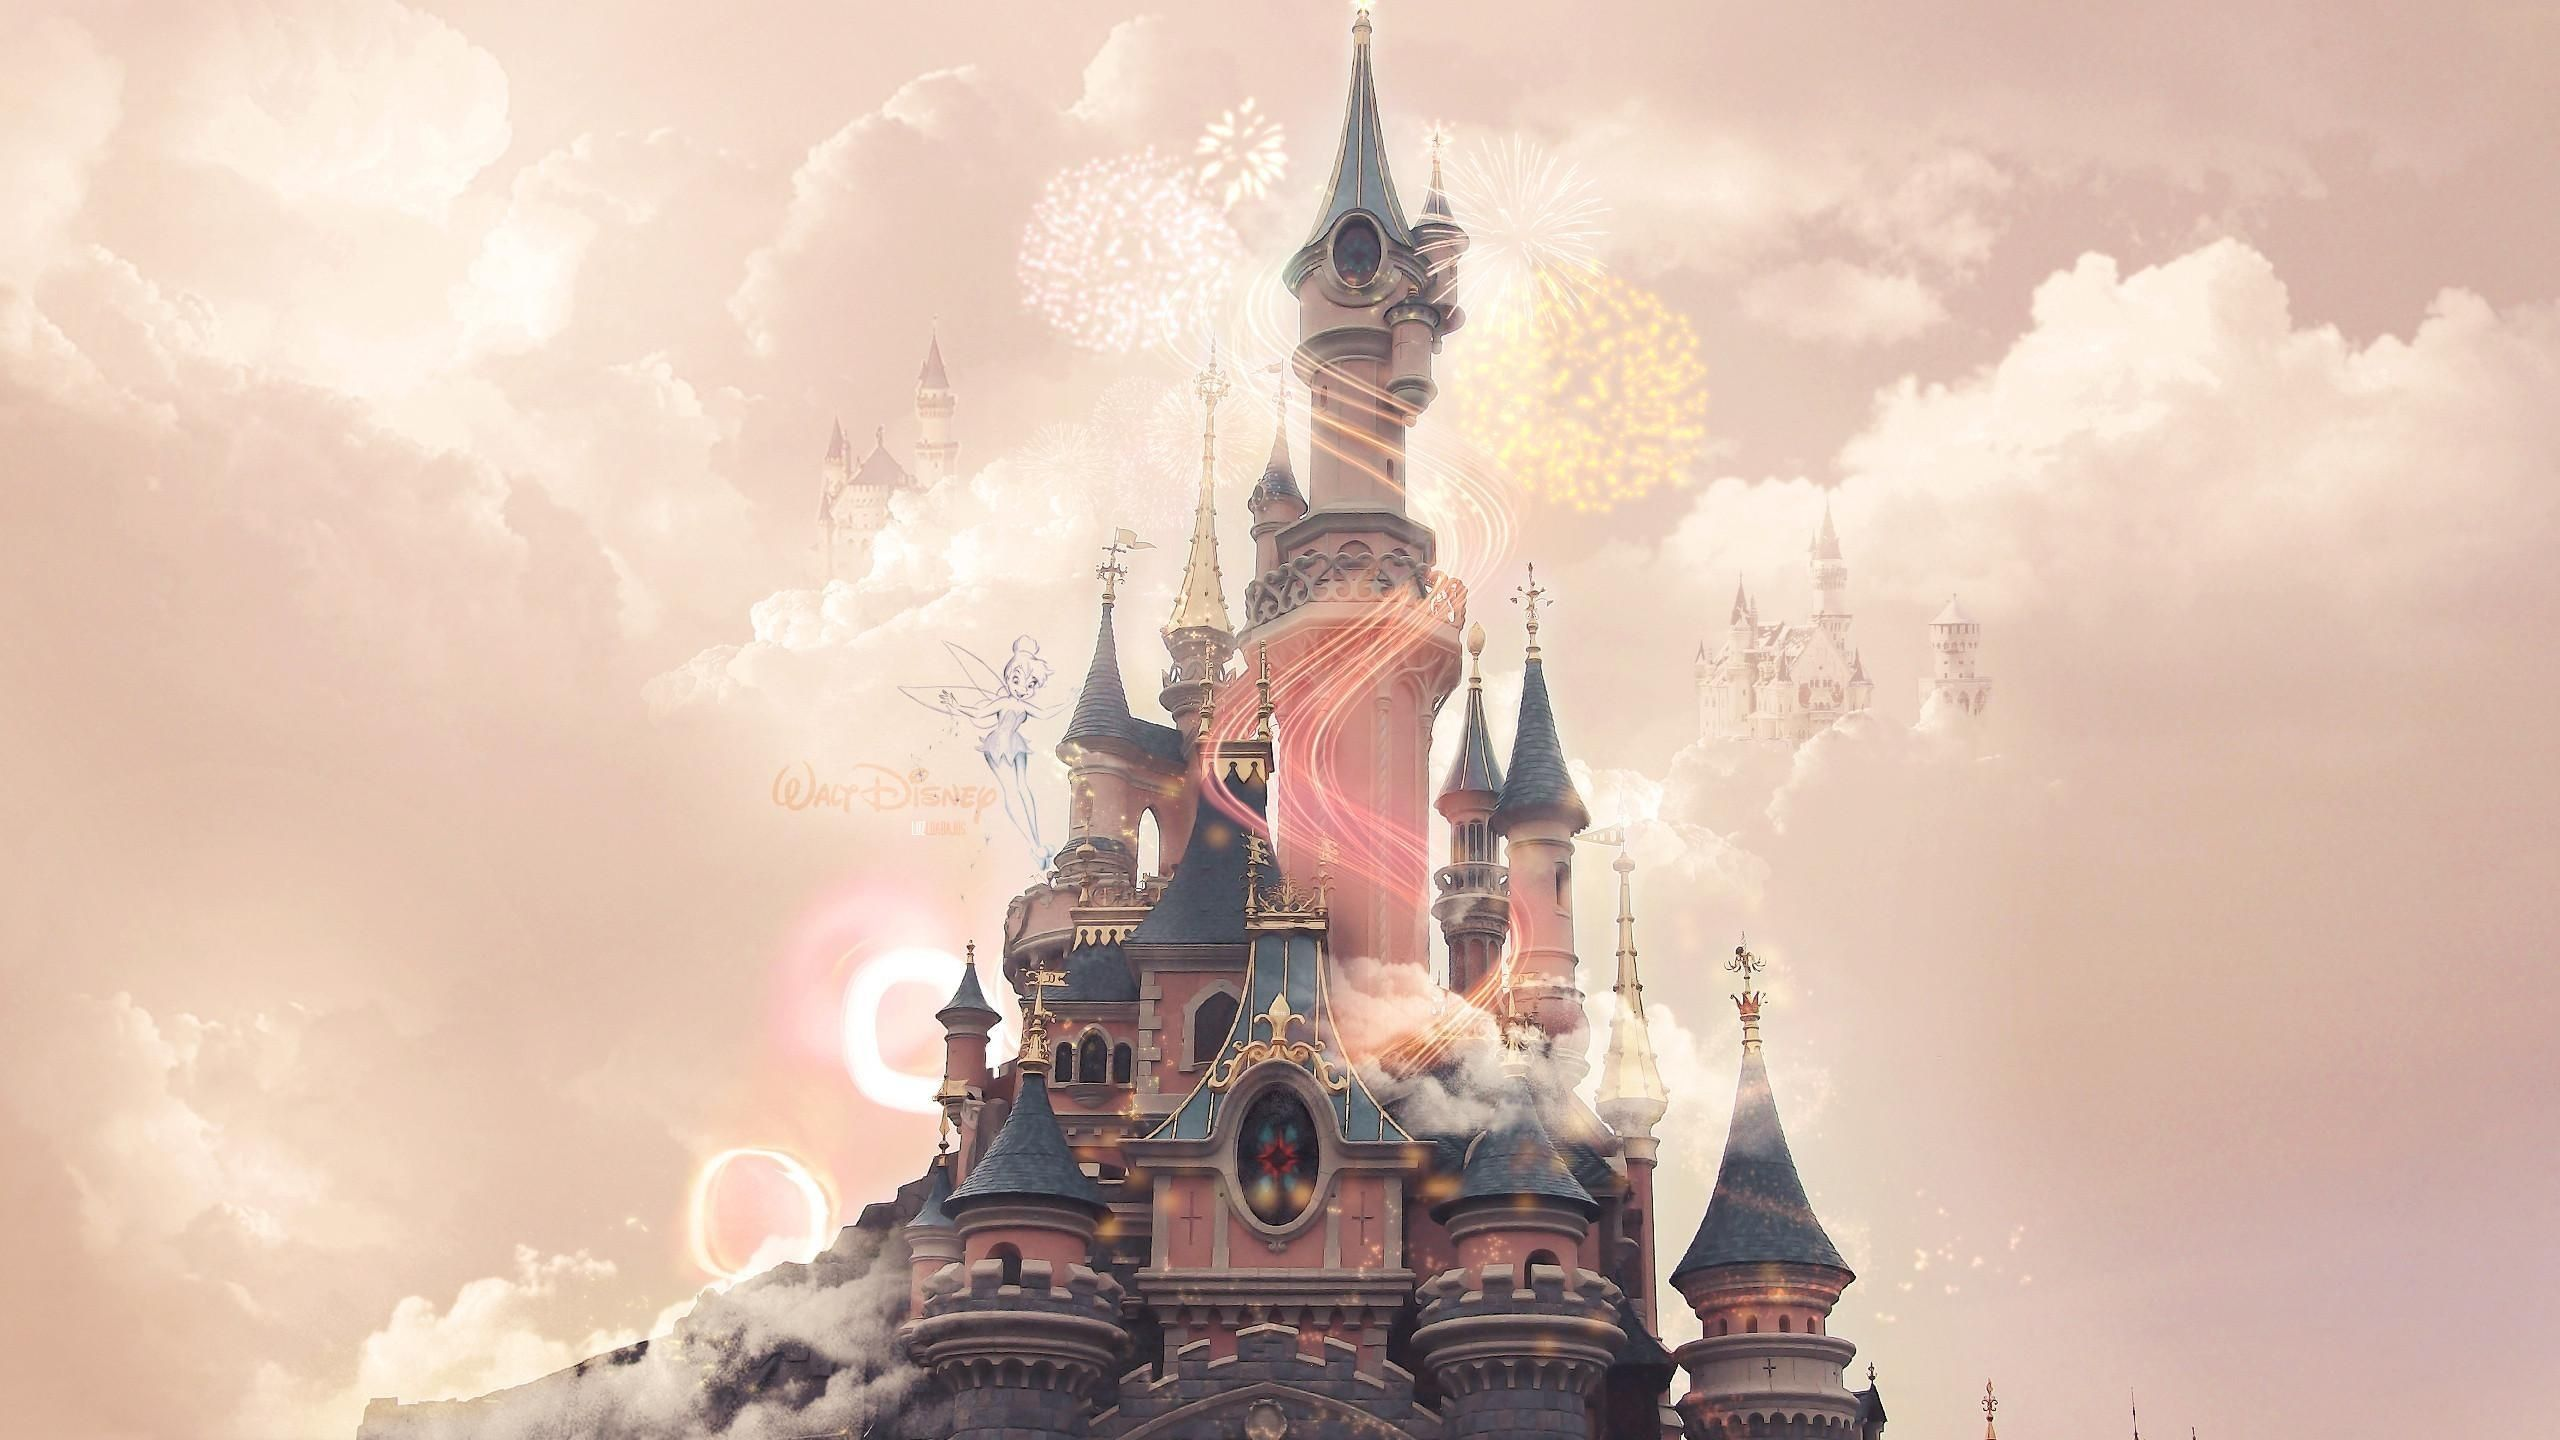 70 Disney Background Wallpapers On Wallpaperplay With Images